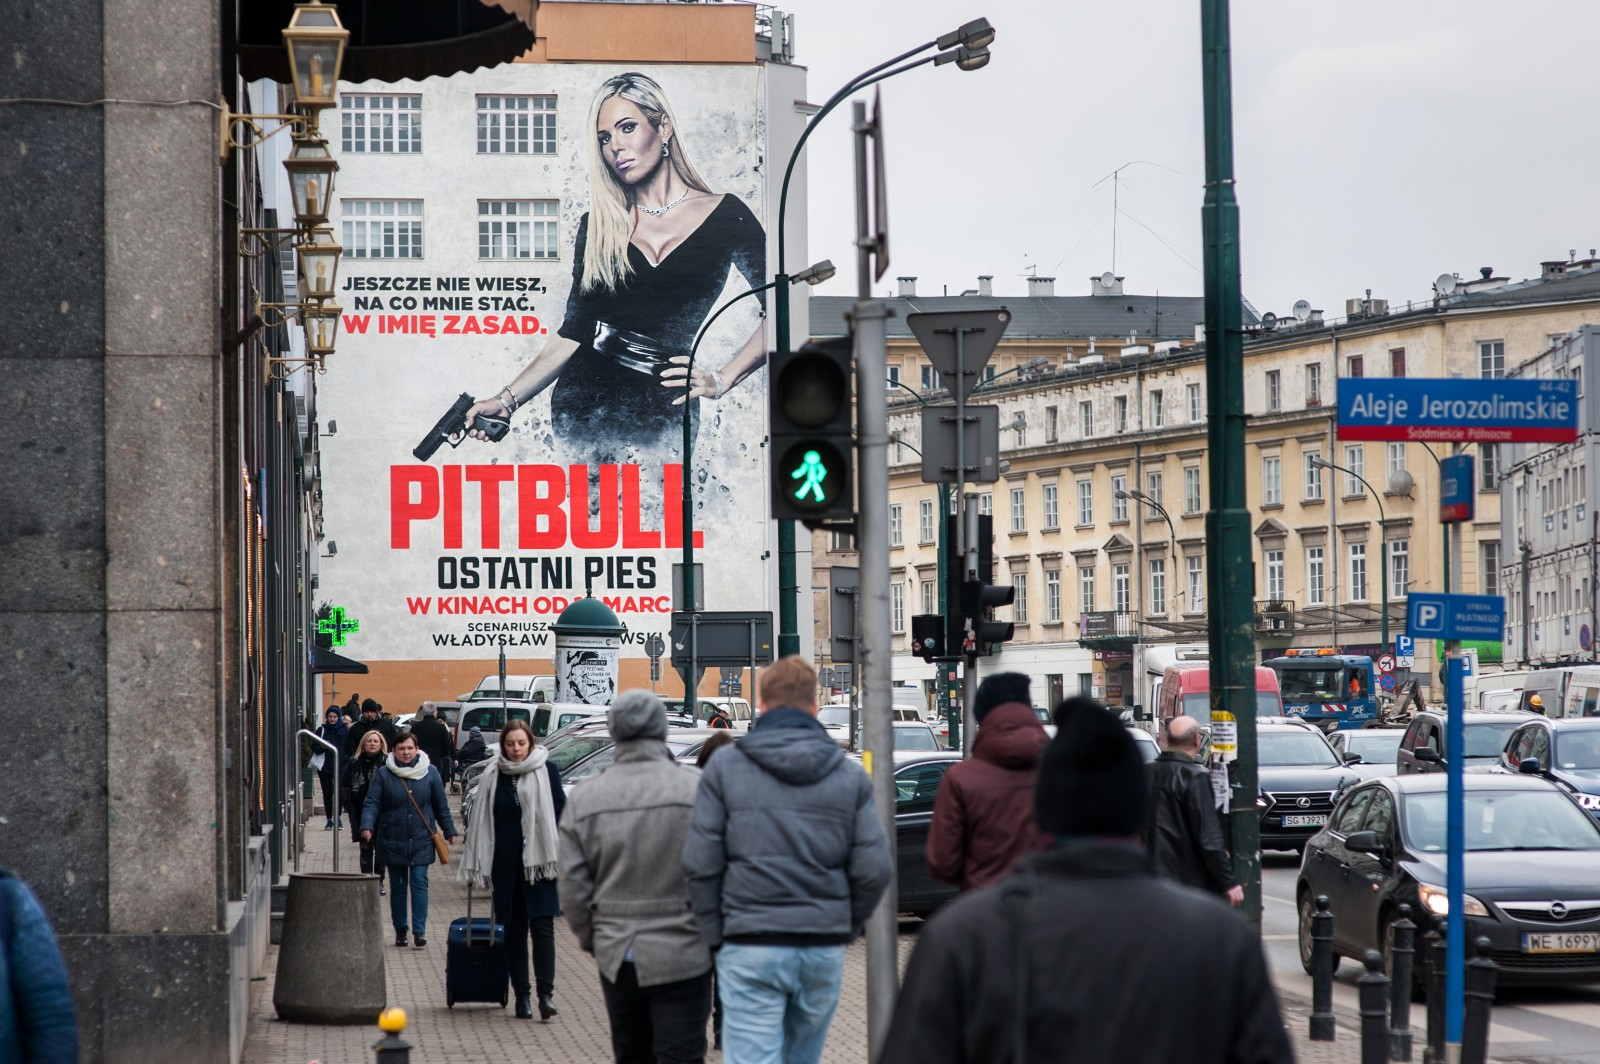 View on an advertising mural from the movie pitbull from aleje jerozolimskie on bracka street in warsaw | Pitbull. Ostatni pies | Portfolio